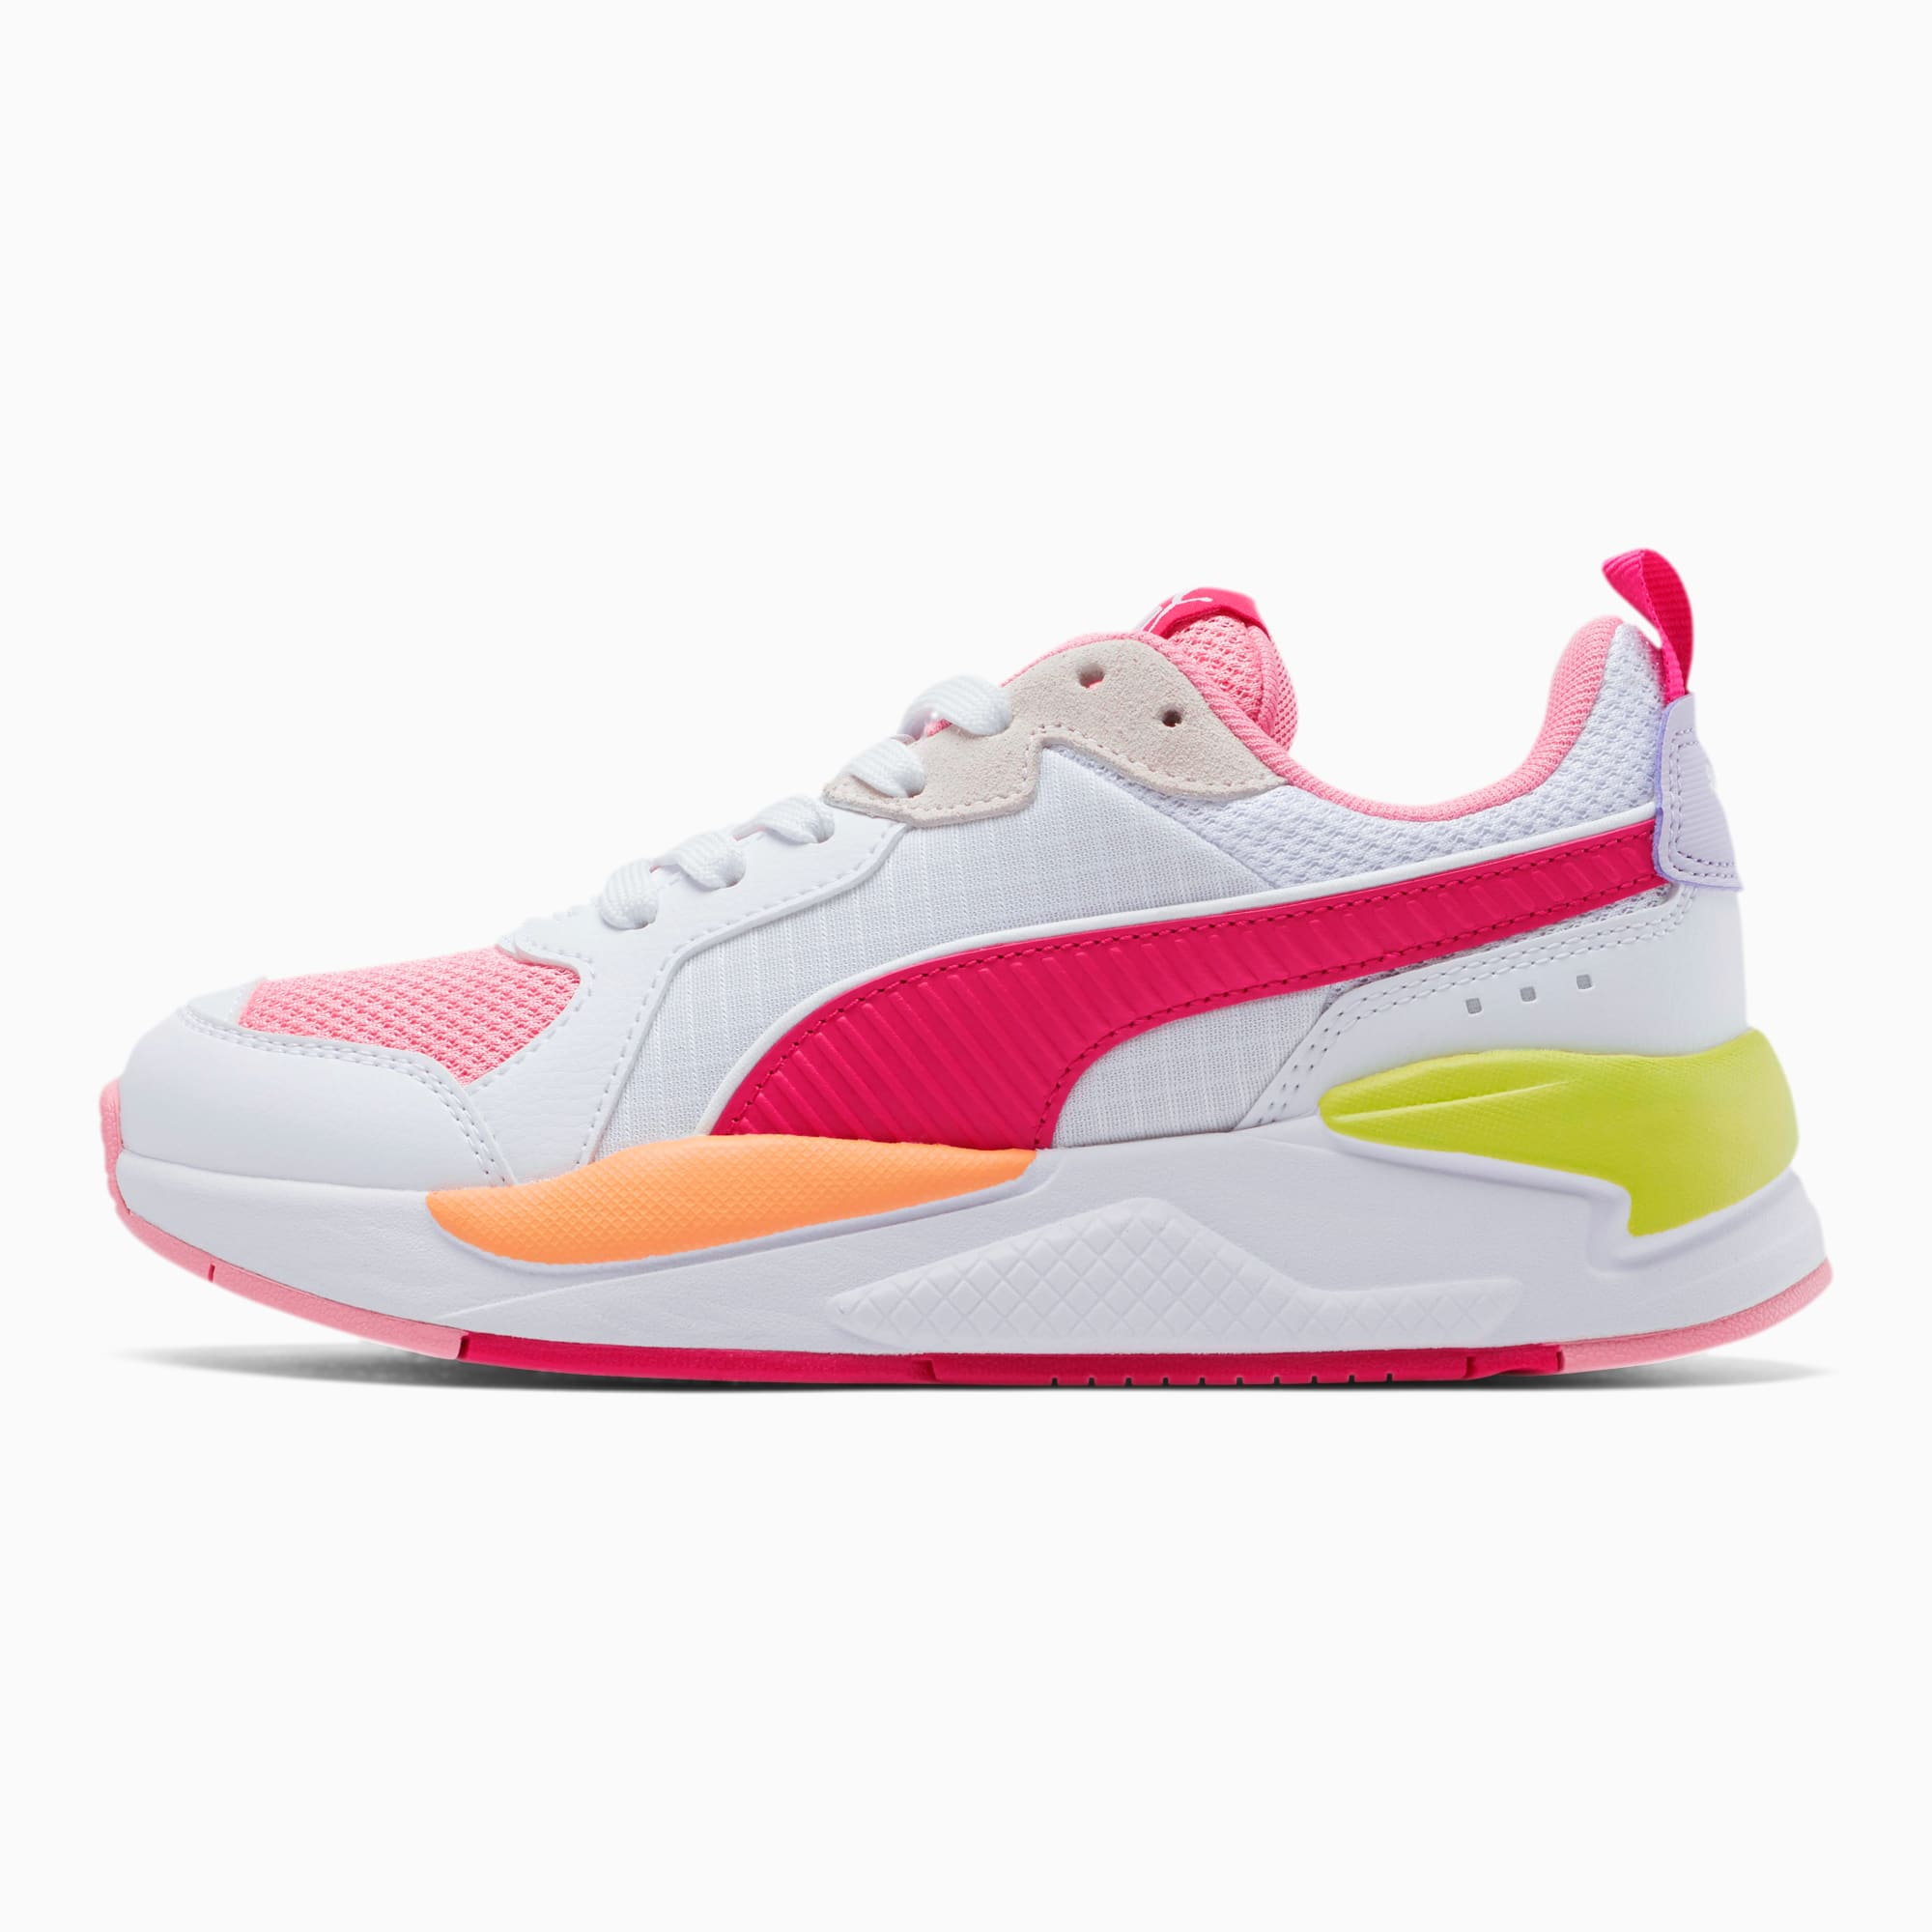 Puma, tennis shoes